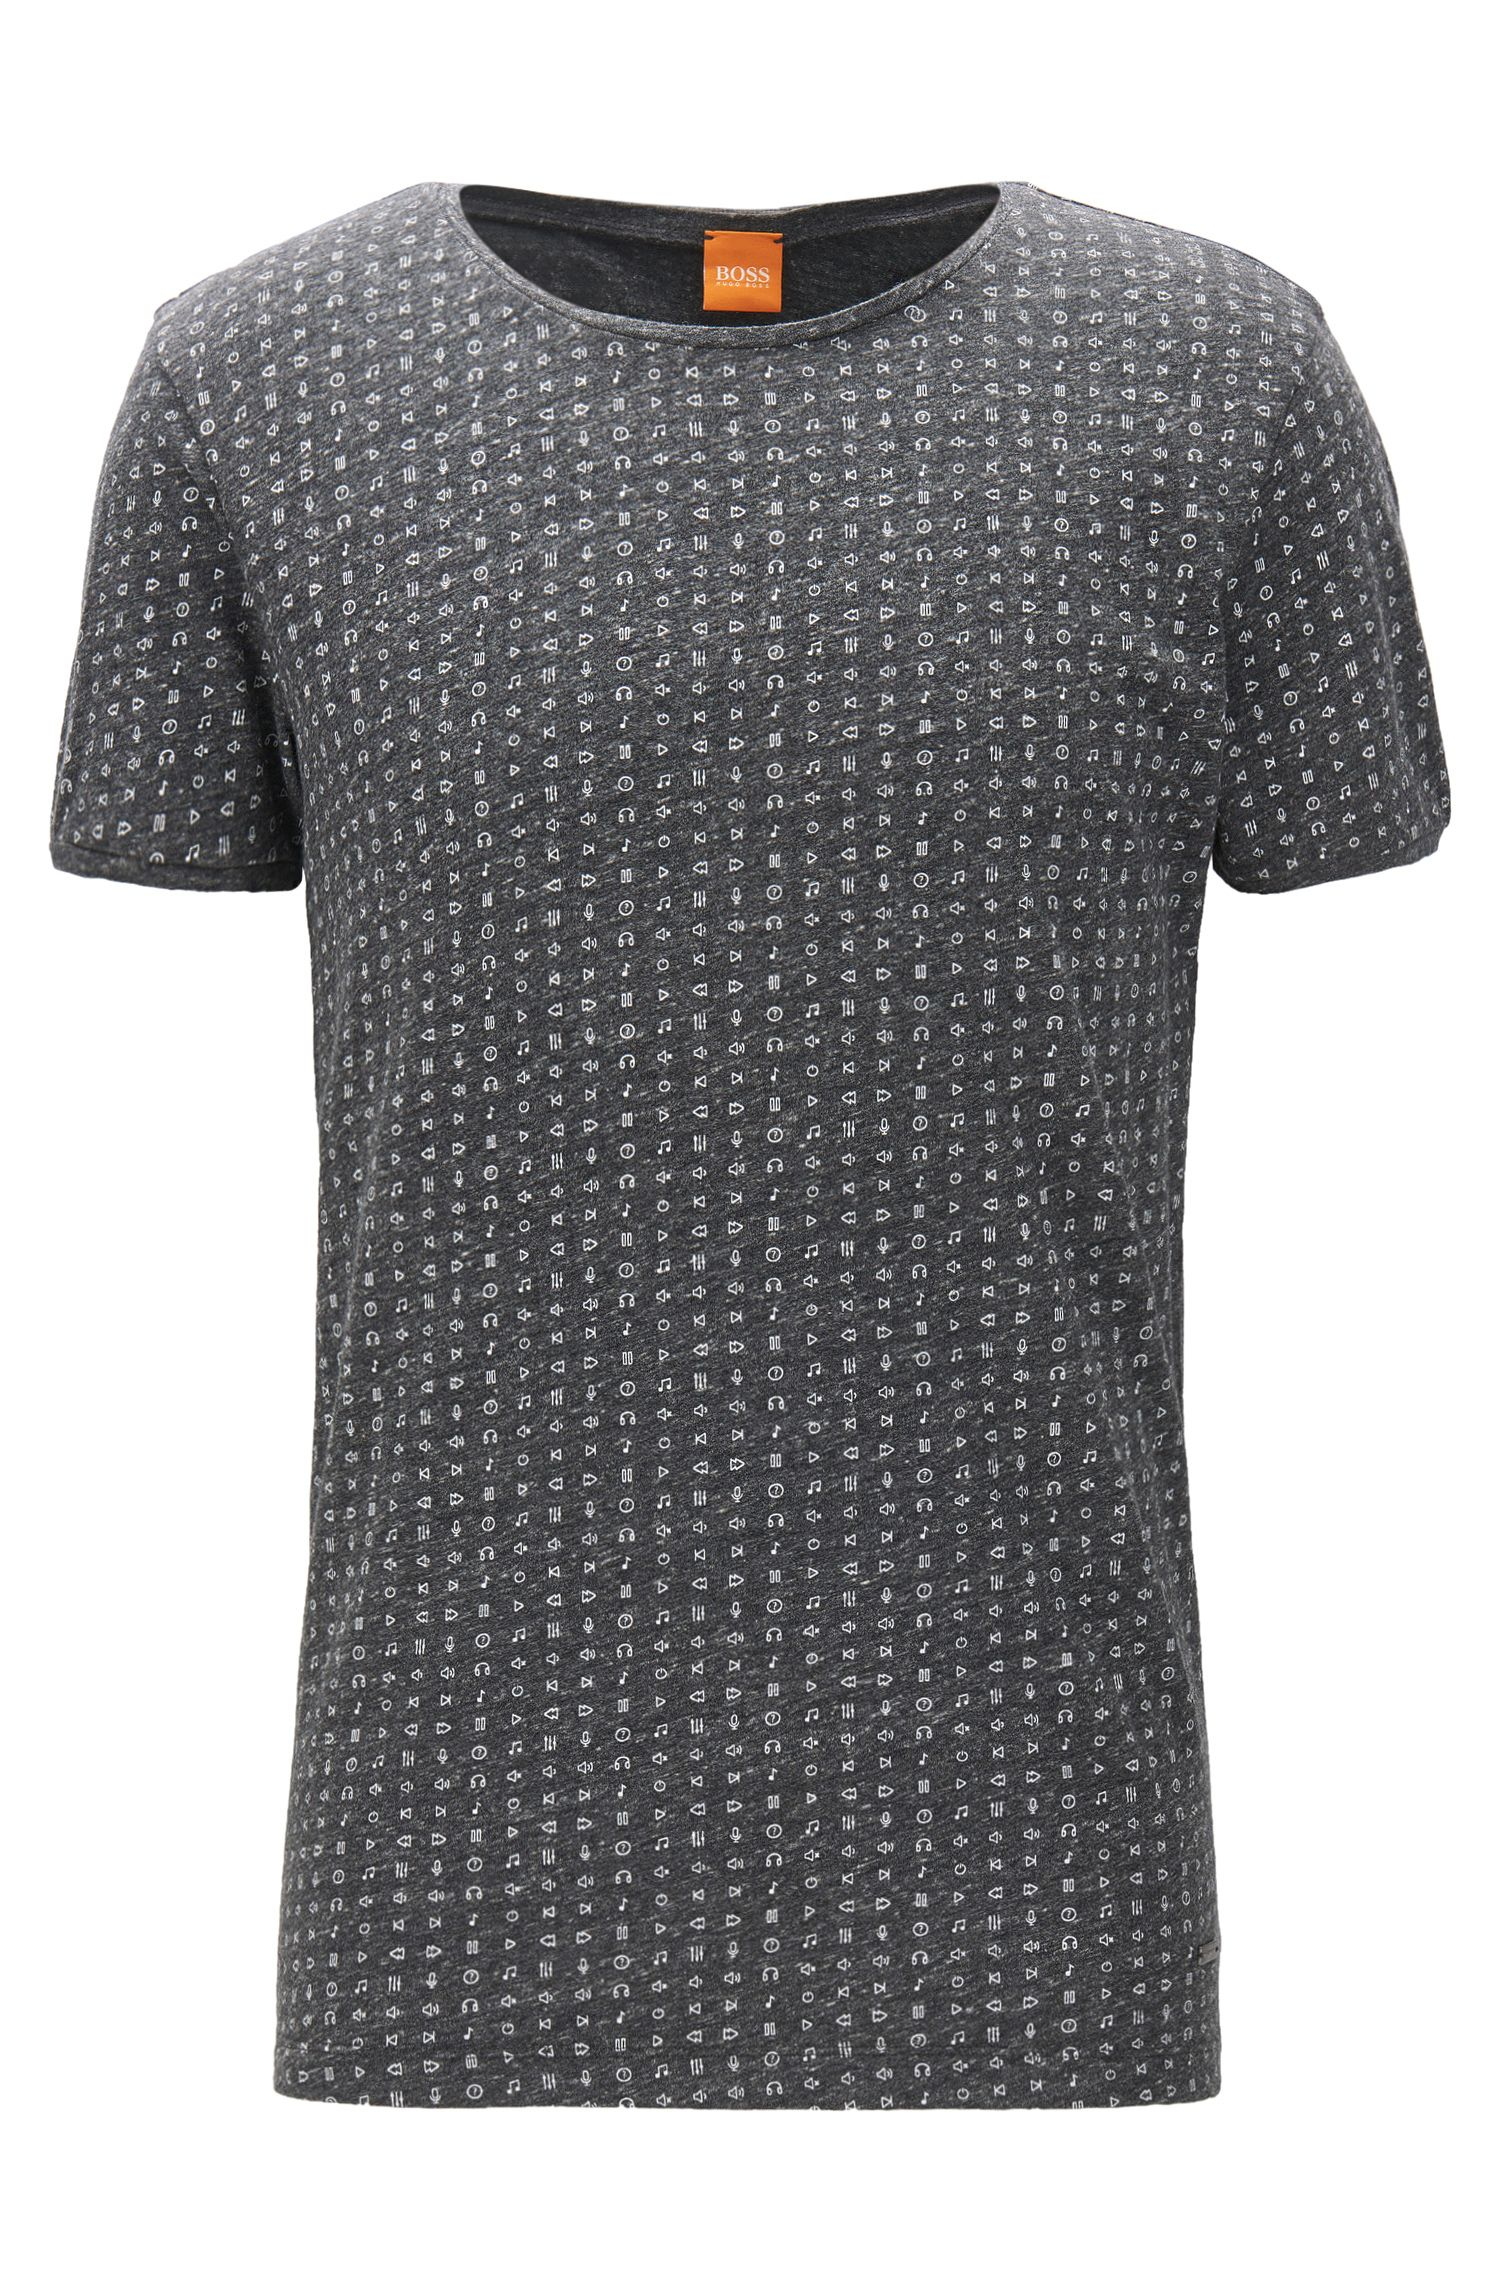 Regular-fit T-shirt in heathered jersey